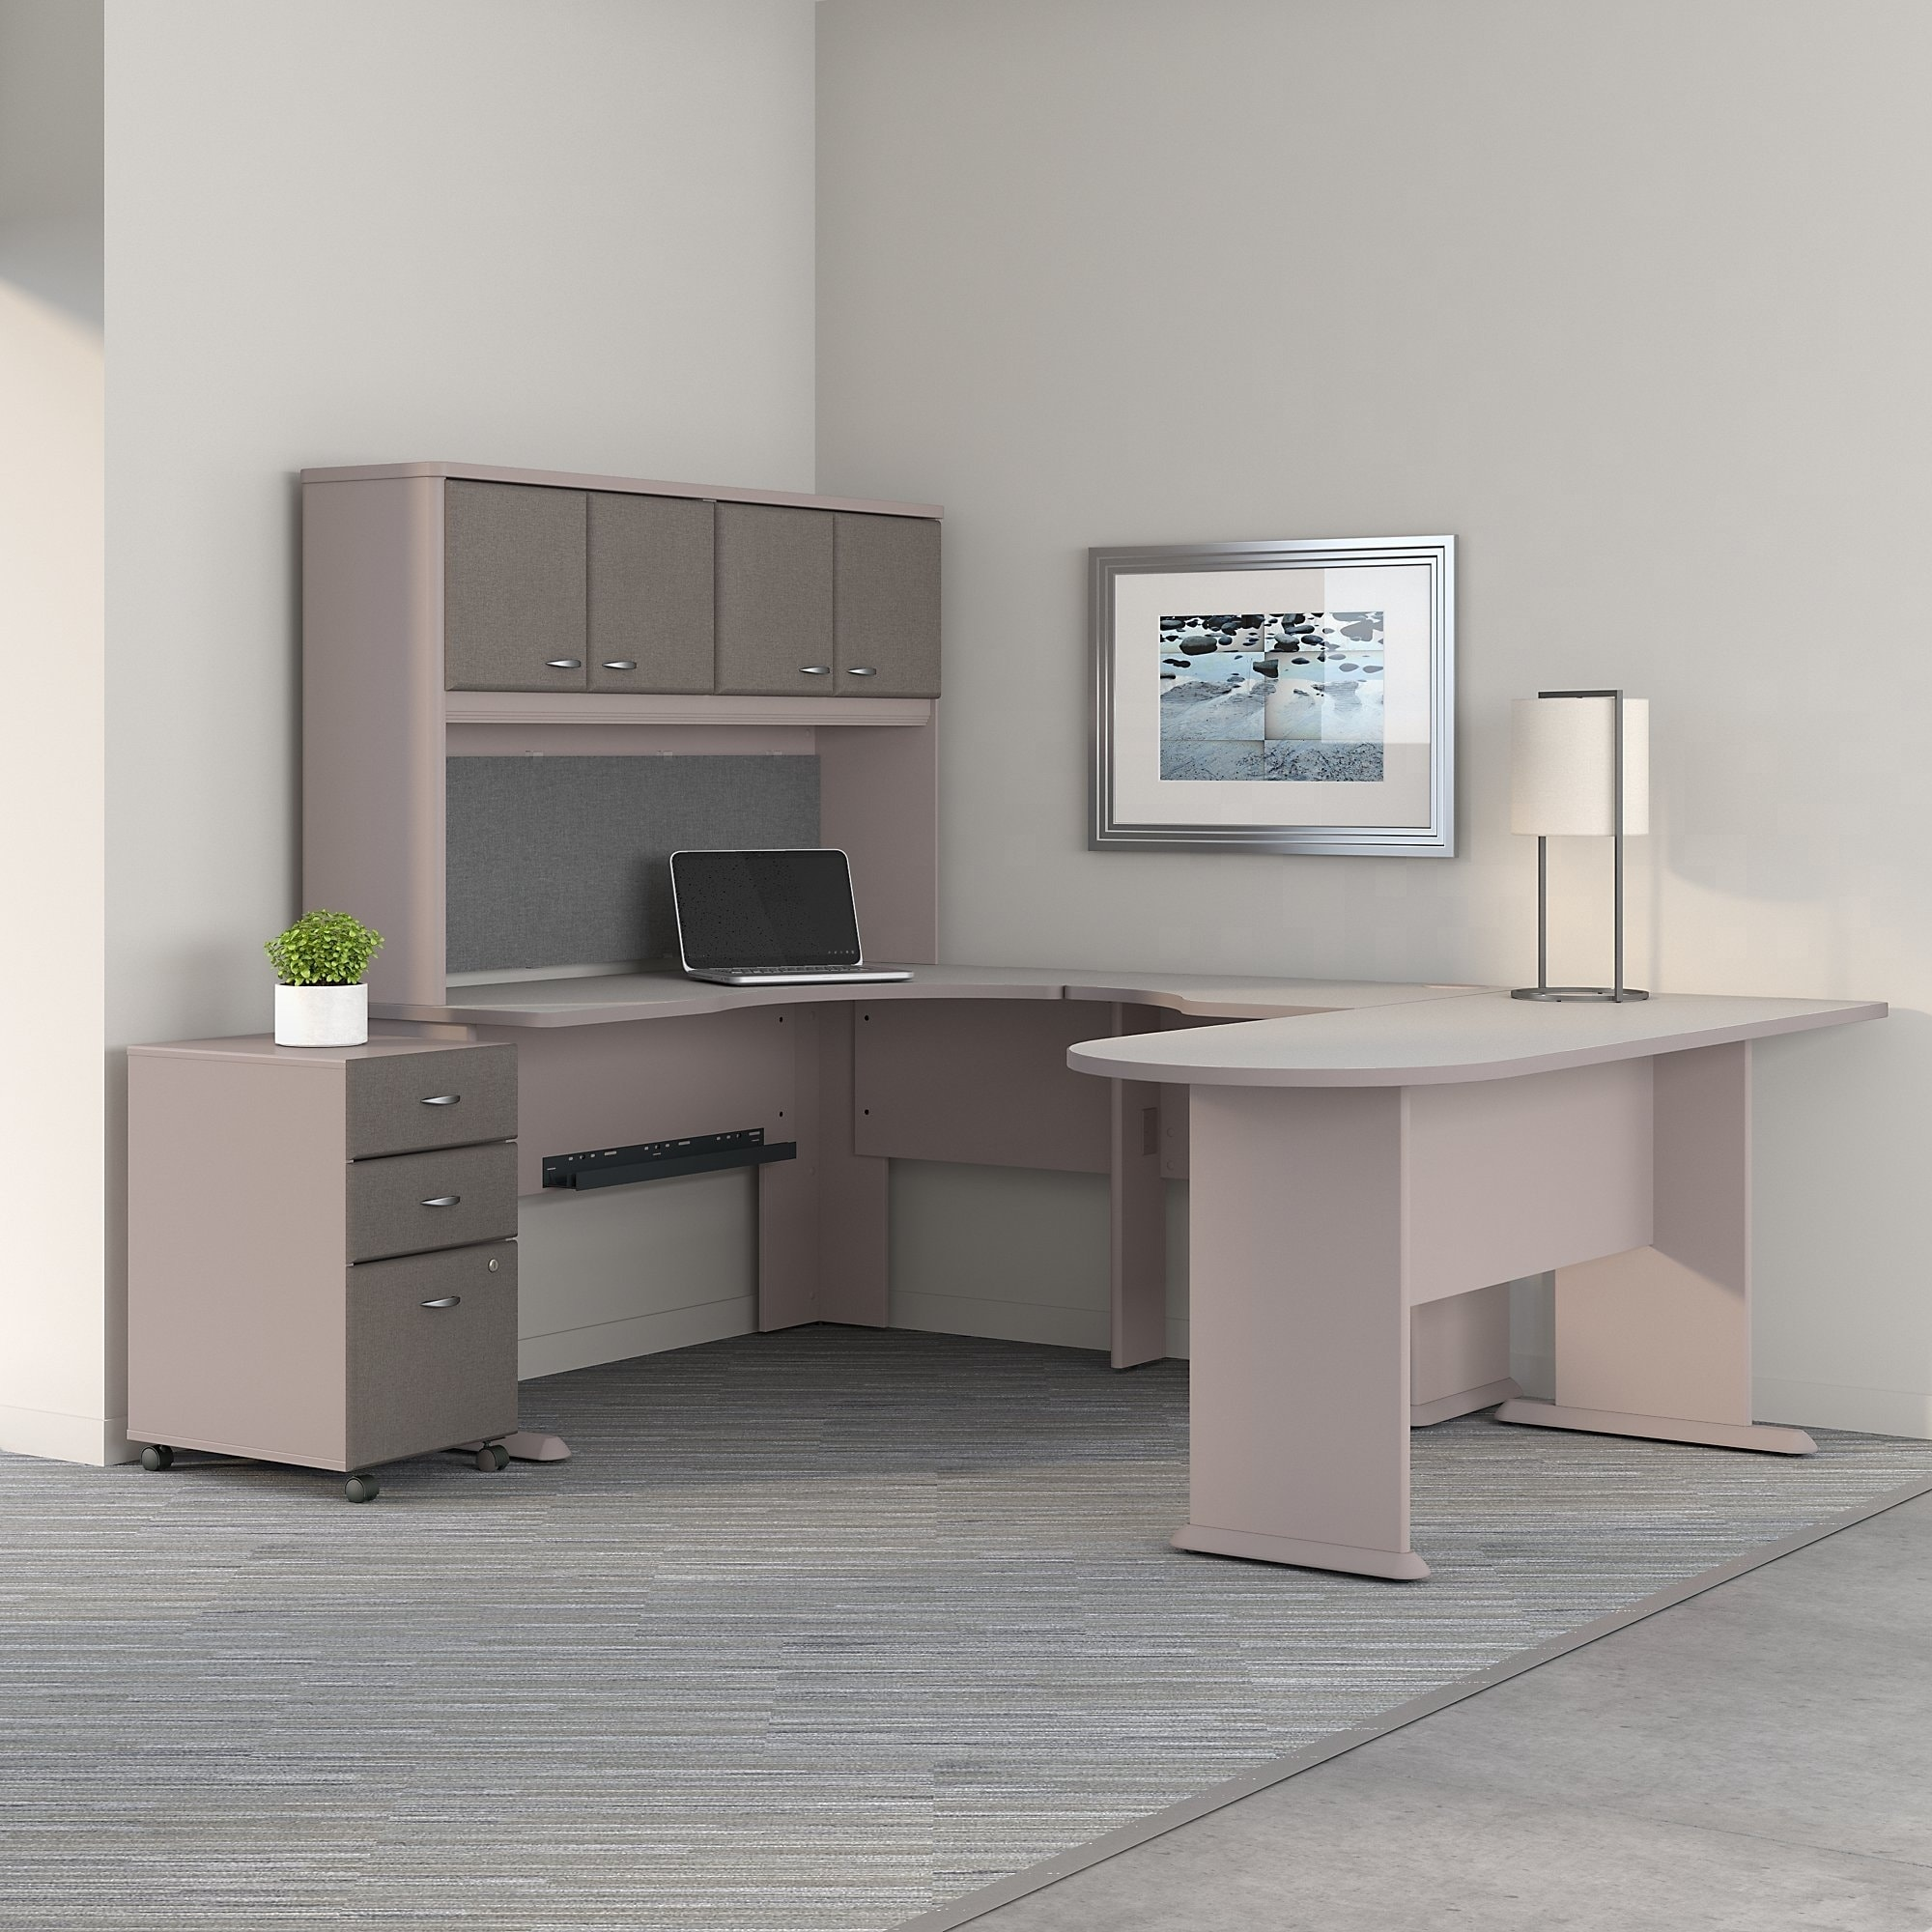 Image of: Shop Black Friday Deals On Series A U Shaped Corner Desk Hutch File Cabinet In Pewter And White On Sale Overstock 20757156